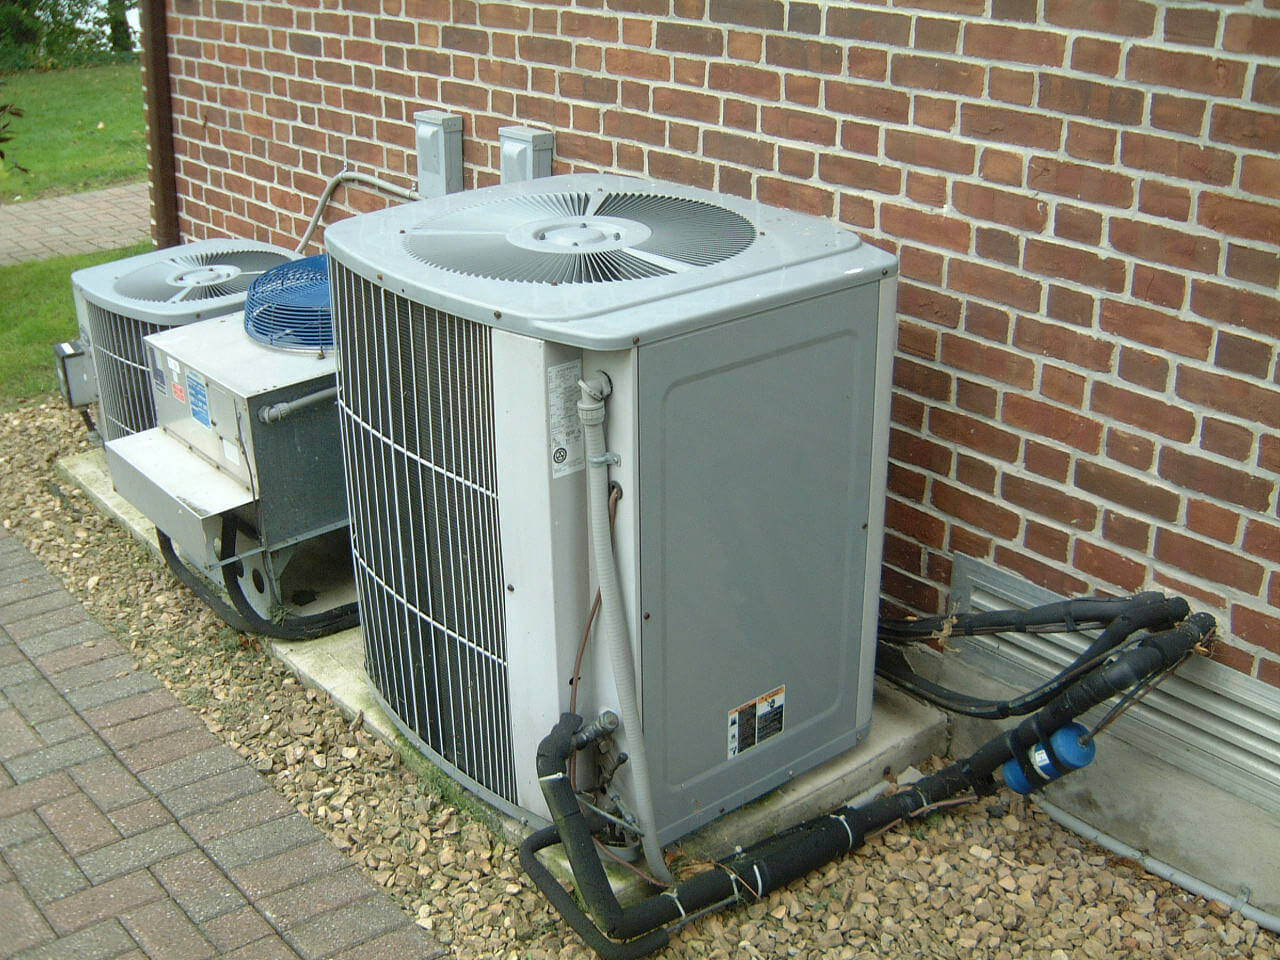 Get that HVAC heating tuned up and ready to go this winter